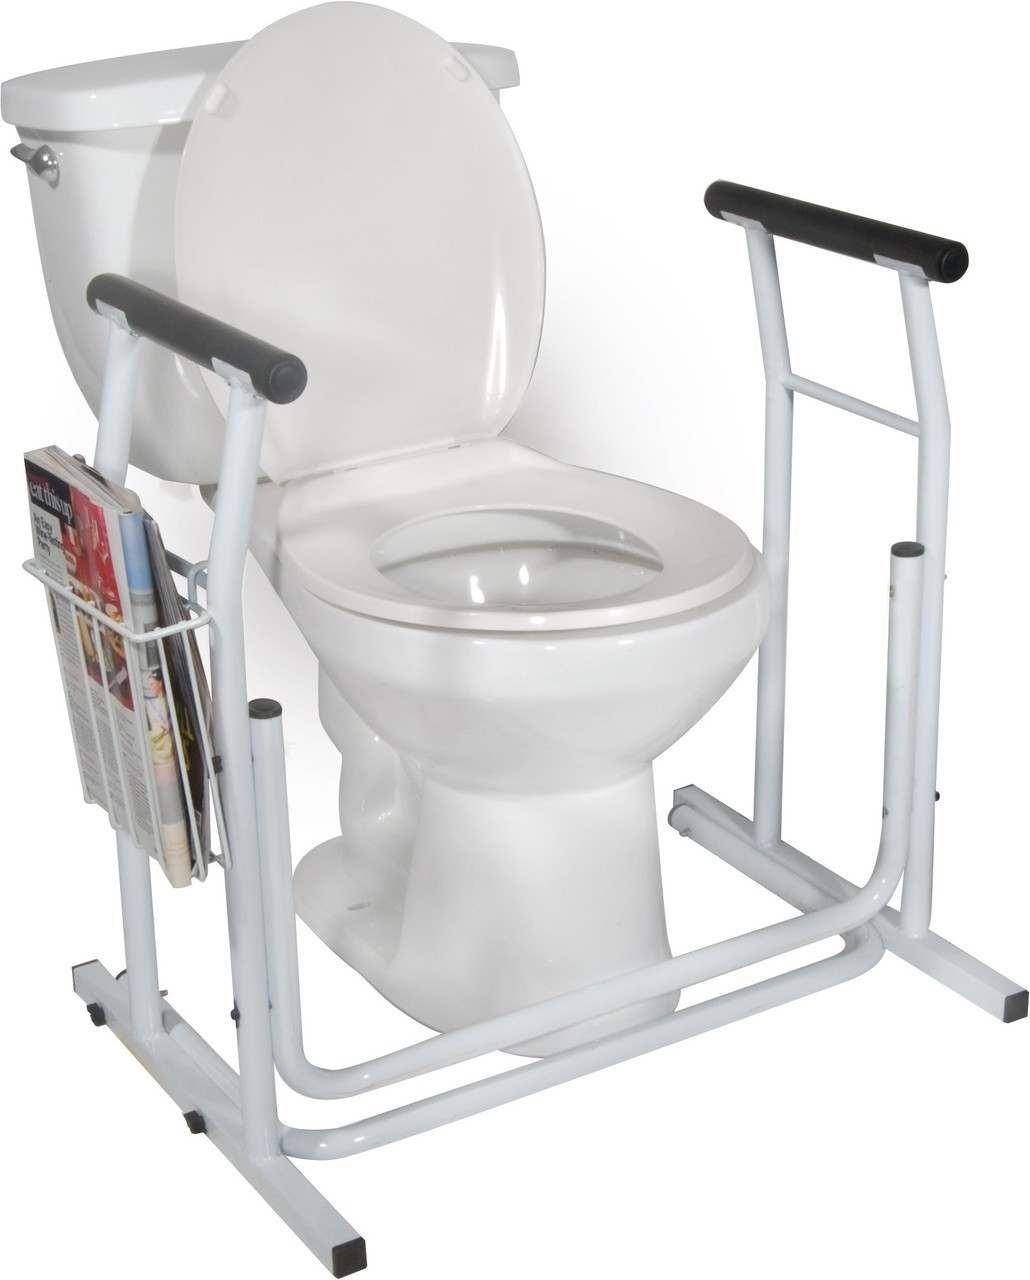 Turn your bidet into a bidet toilet seat with arms or safety rails